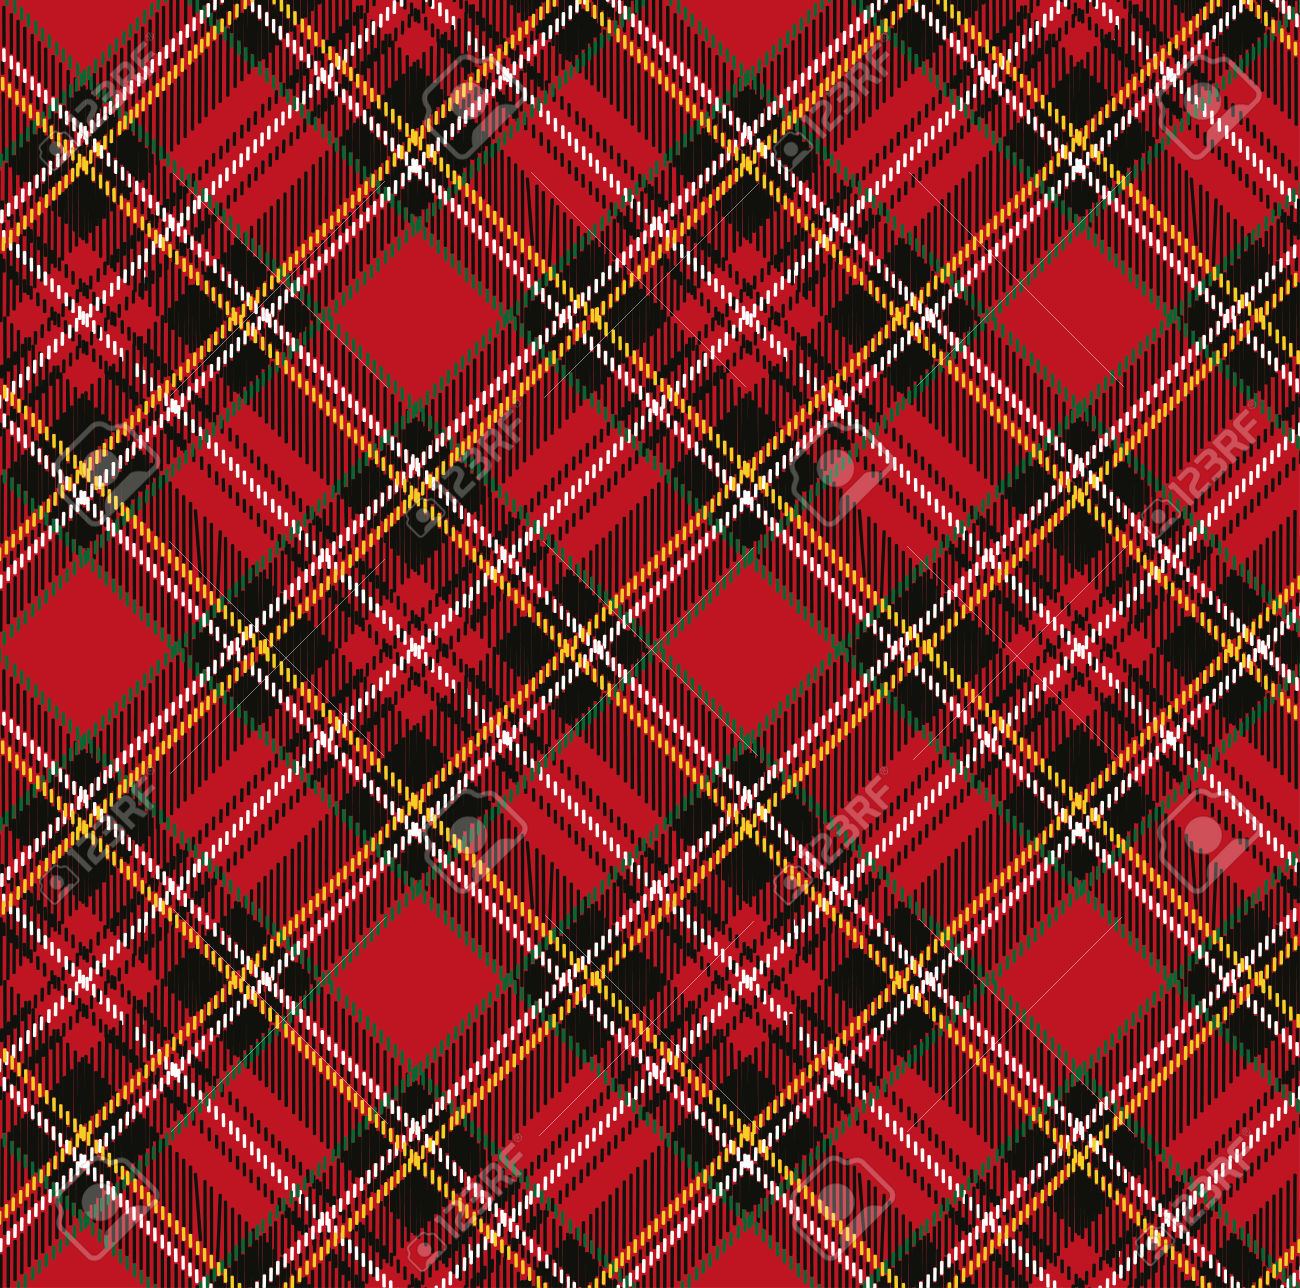 Fall Out Boy Phone Wallpapers Download Red Tartan Plaid Wallpaper Gallery